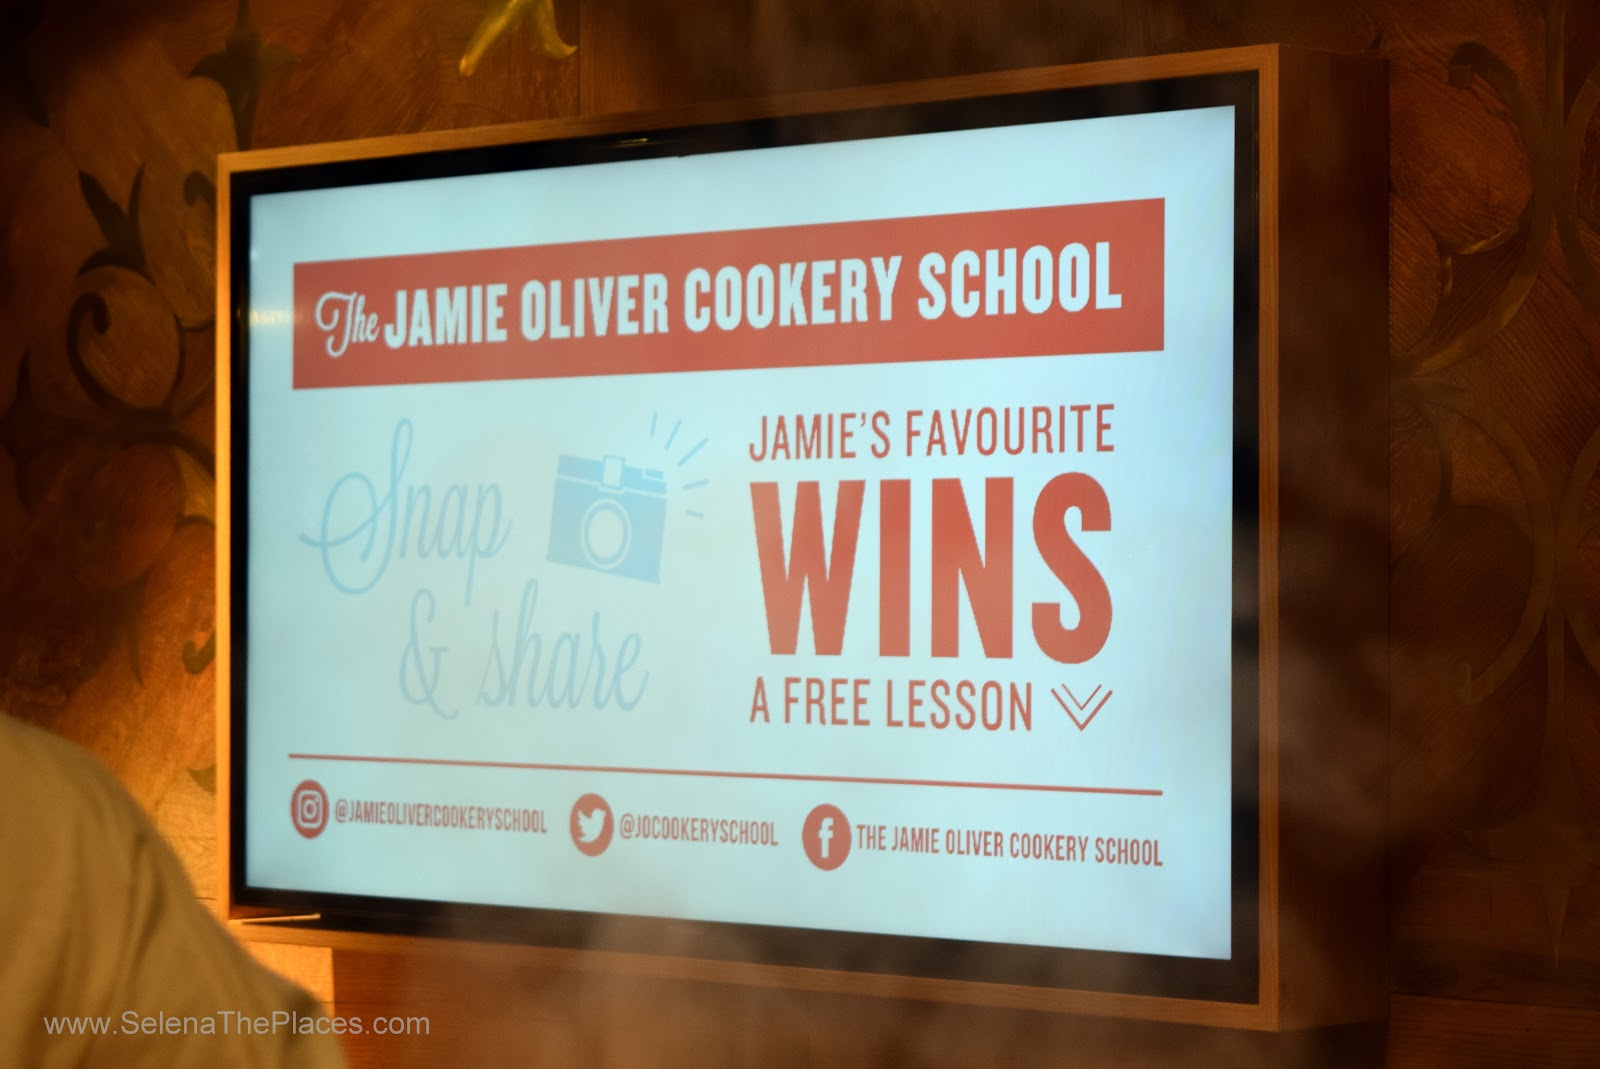 The Jamie Oliver Cookery School